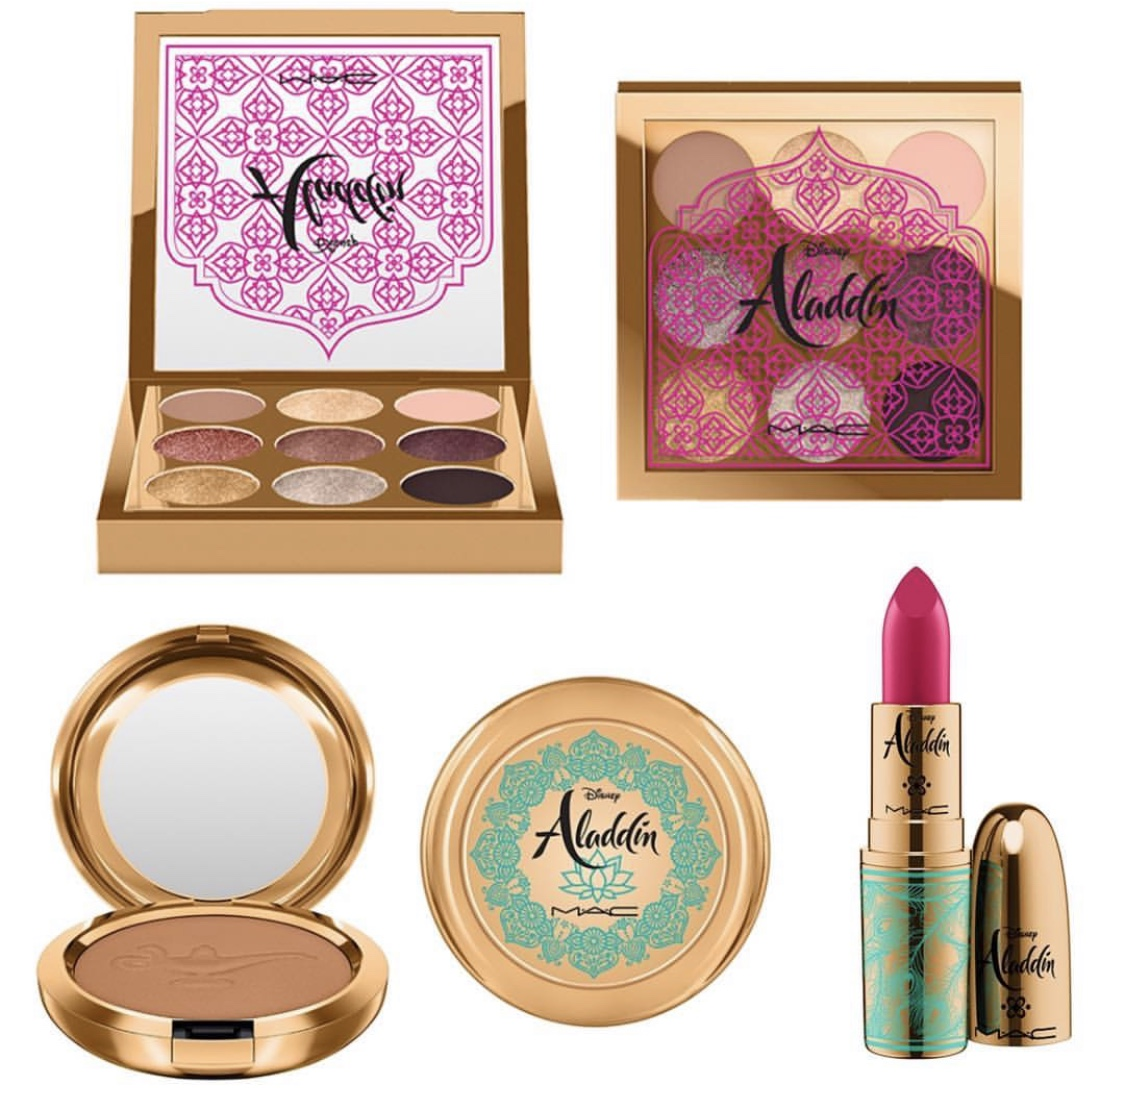 The Disney Aladdin Collection by MAC Cosmetics is Coming! #DisneyStyle 3